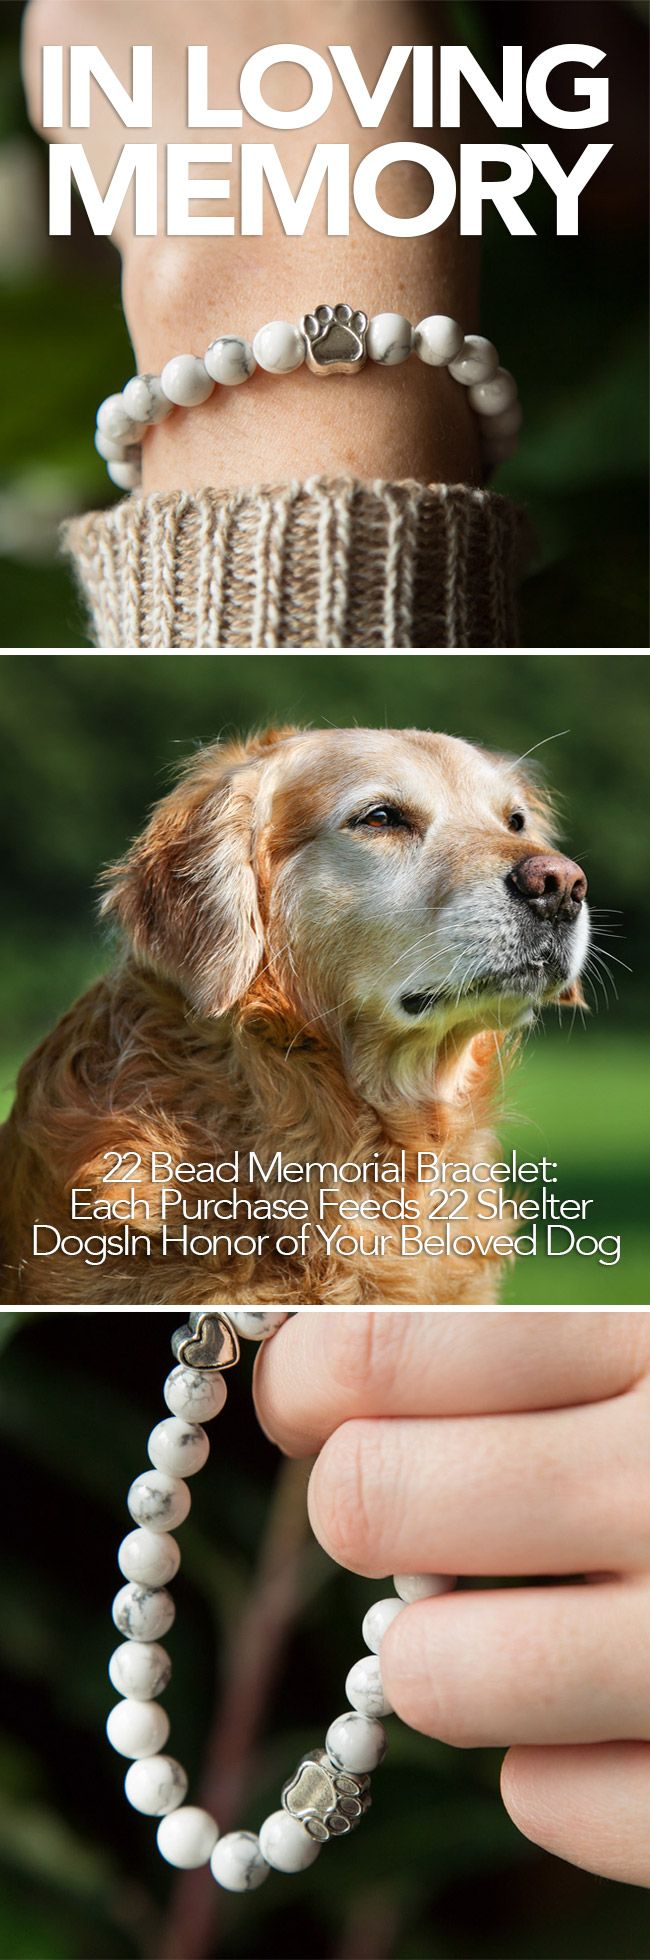 Love this bracelet! Each part symbolizes something to remember a dog you loved and lost. The best part is each bead represents feeding a shelter dog! http://iheartdogs.com/product/limited-edition-memorial-bracelet-feeds-22-shelter-dogs-in-honor-of-your-beloved-pup/?utm_source=PinterestNetwork_22BeadMemorial&utm_medium=link&utm_campaign=PinterestNetwork_22BeadMemorial